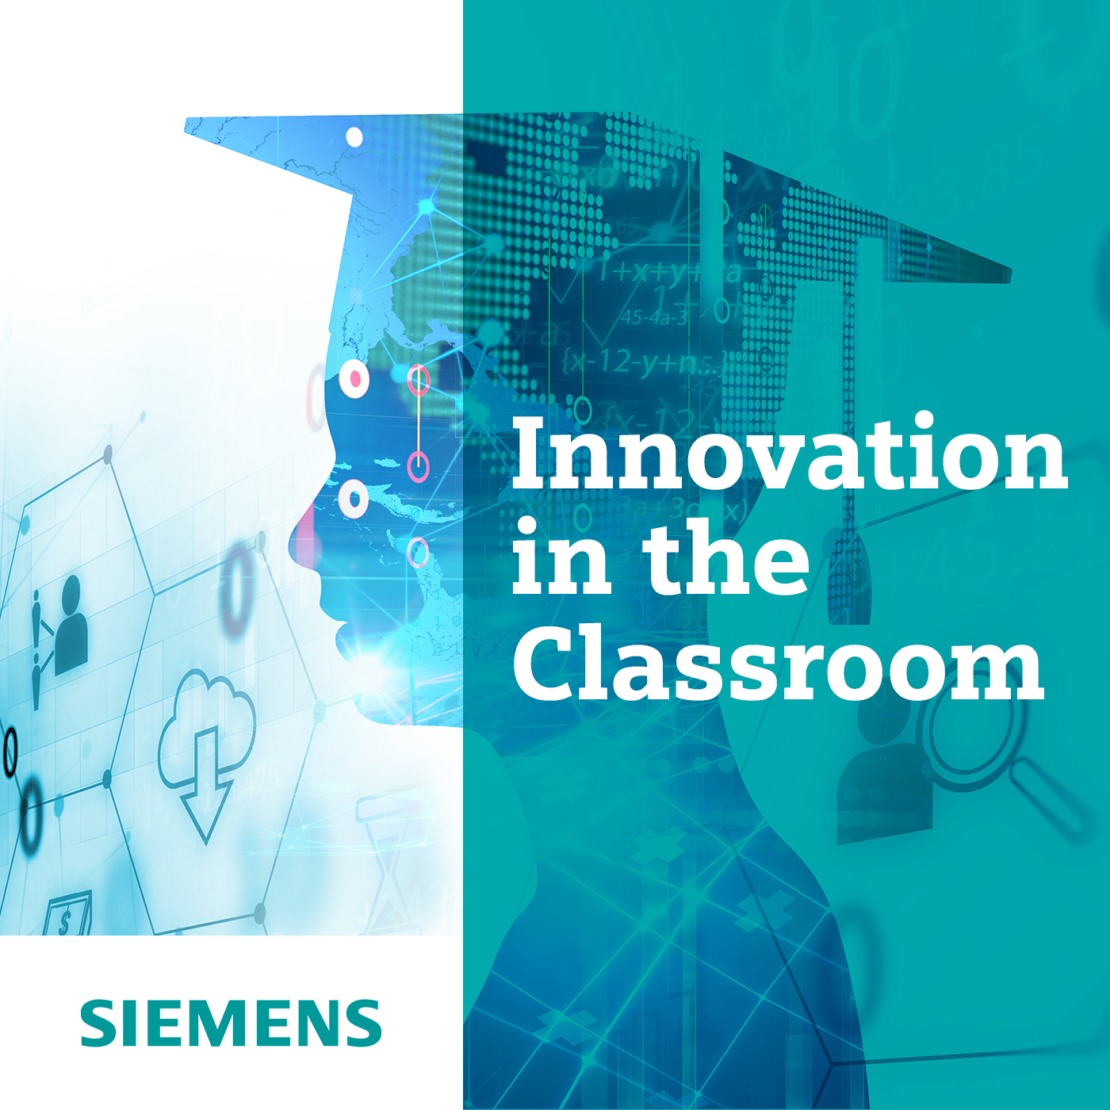 Innovation in the Classroom podcast image